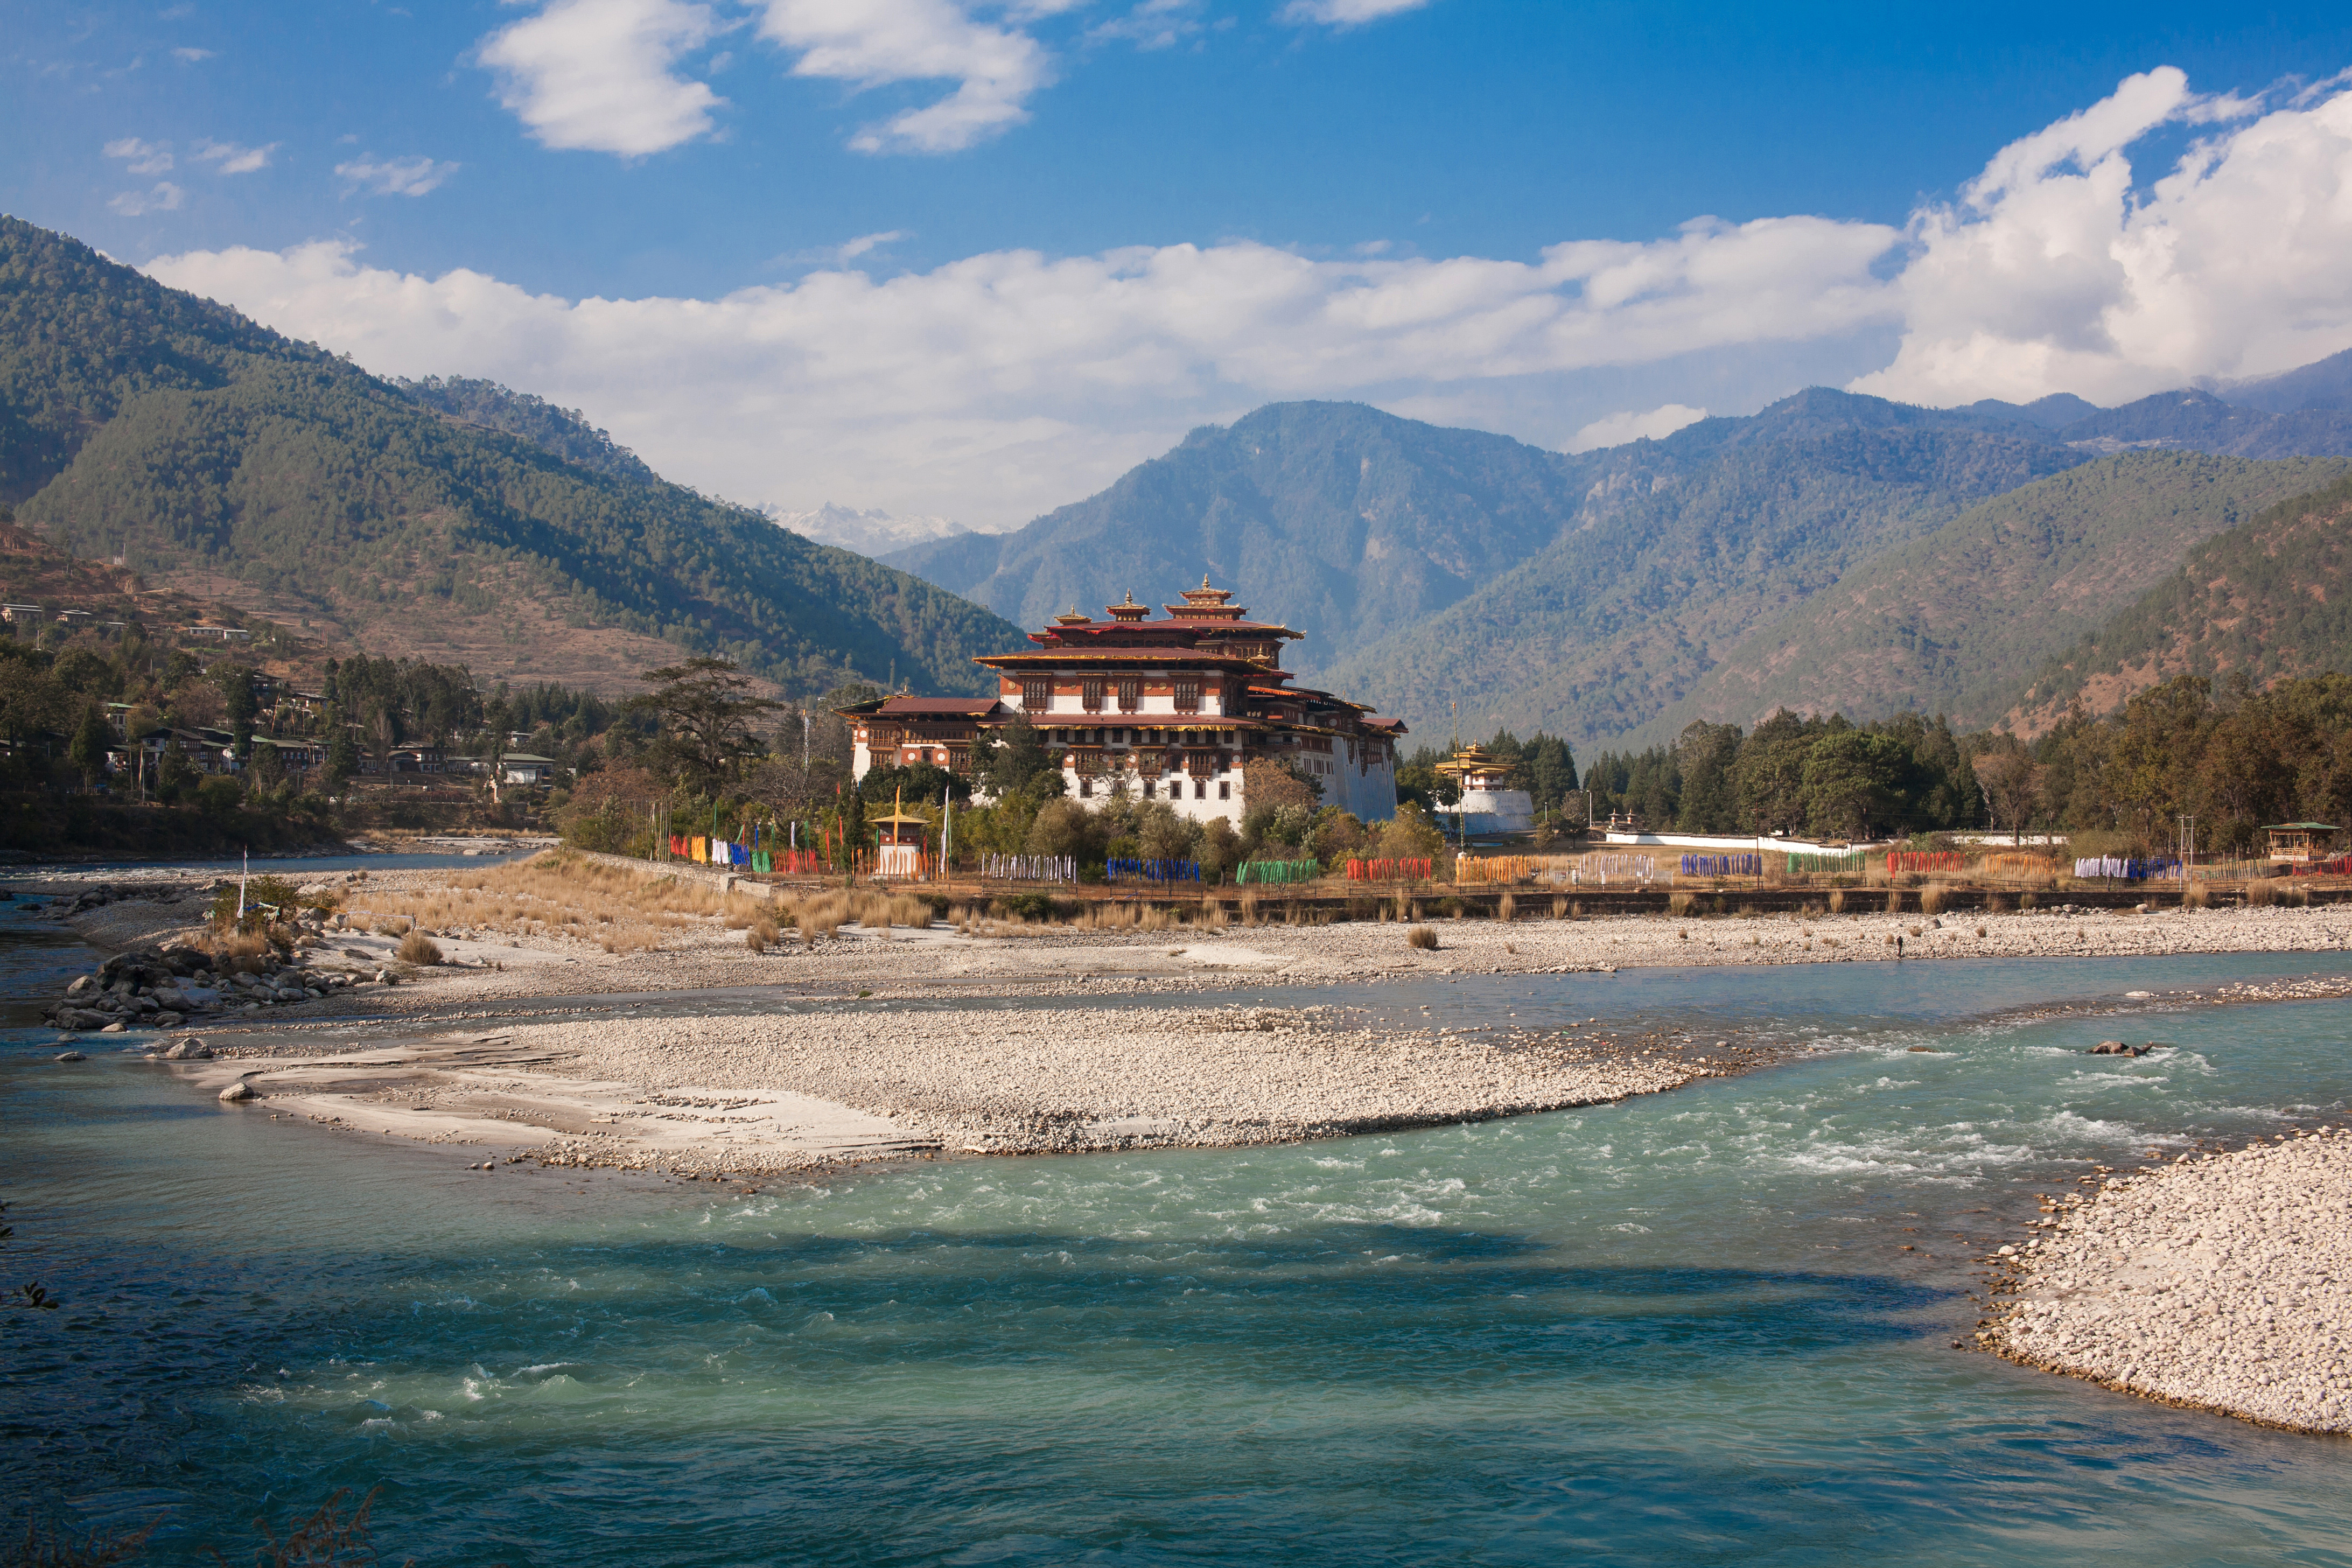 The Bumthang Valley